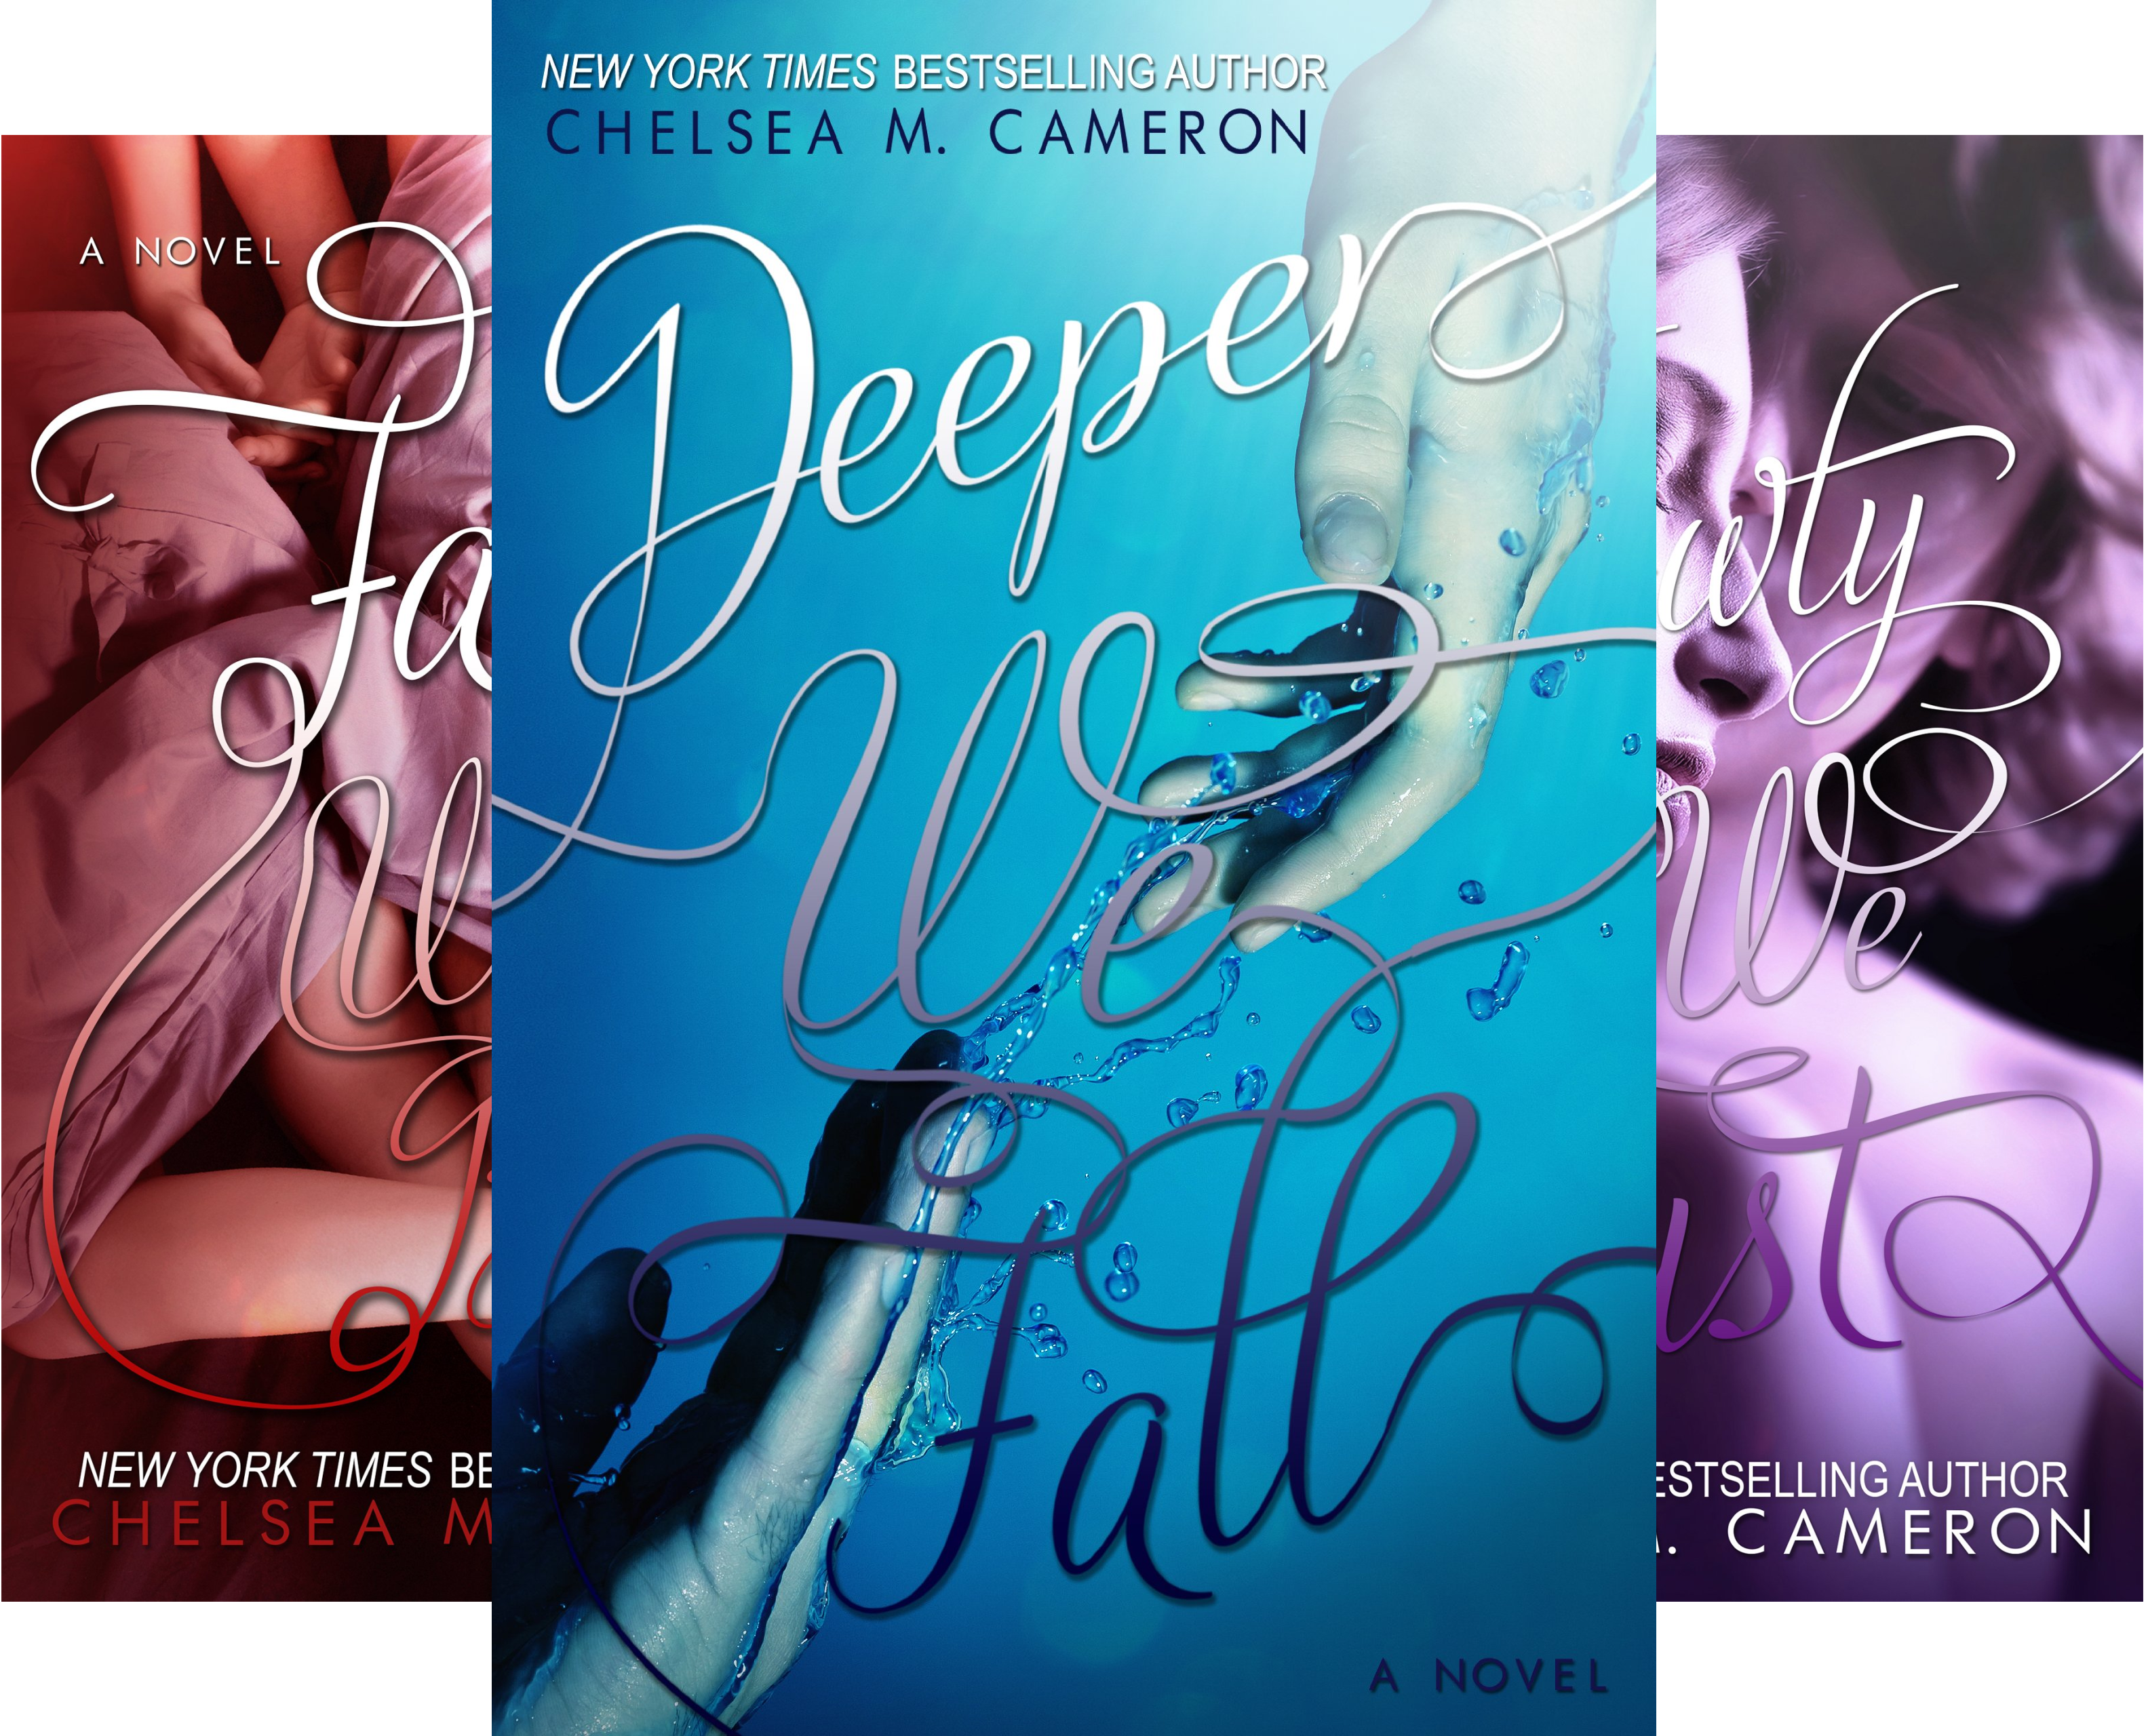 Fall and Rise (4 Book Series) Chelsea Kindle Fall